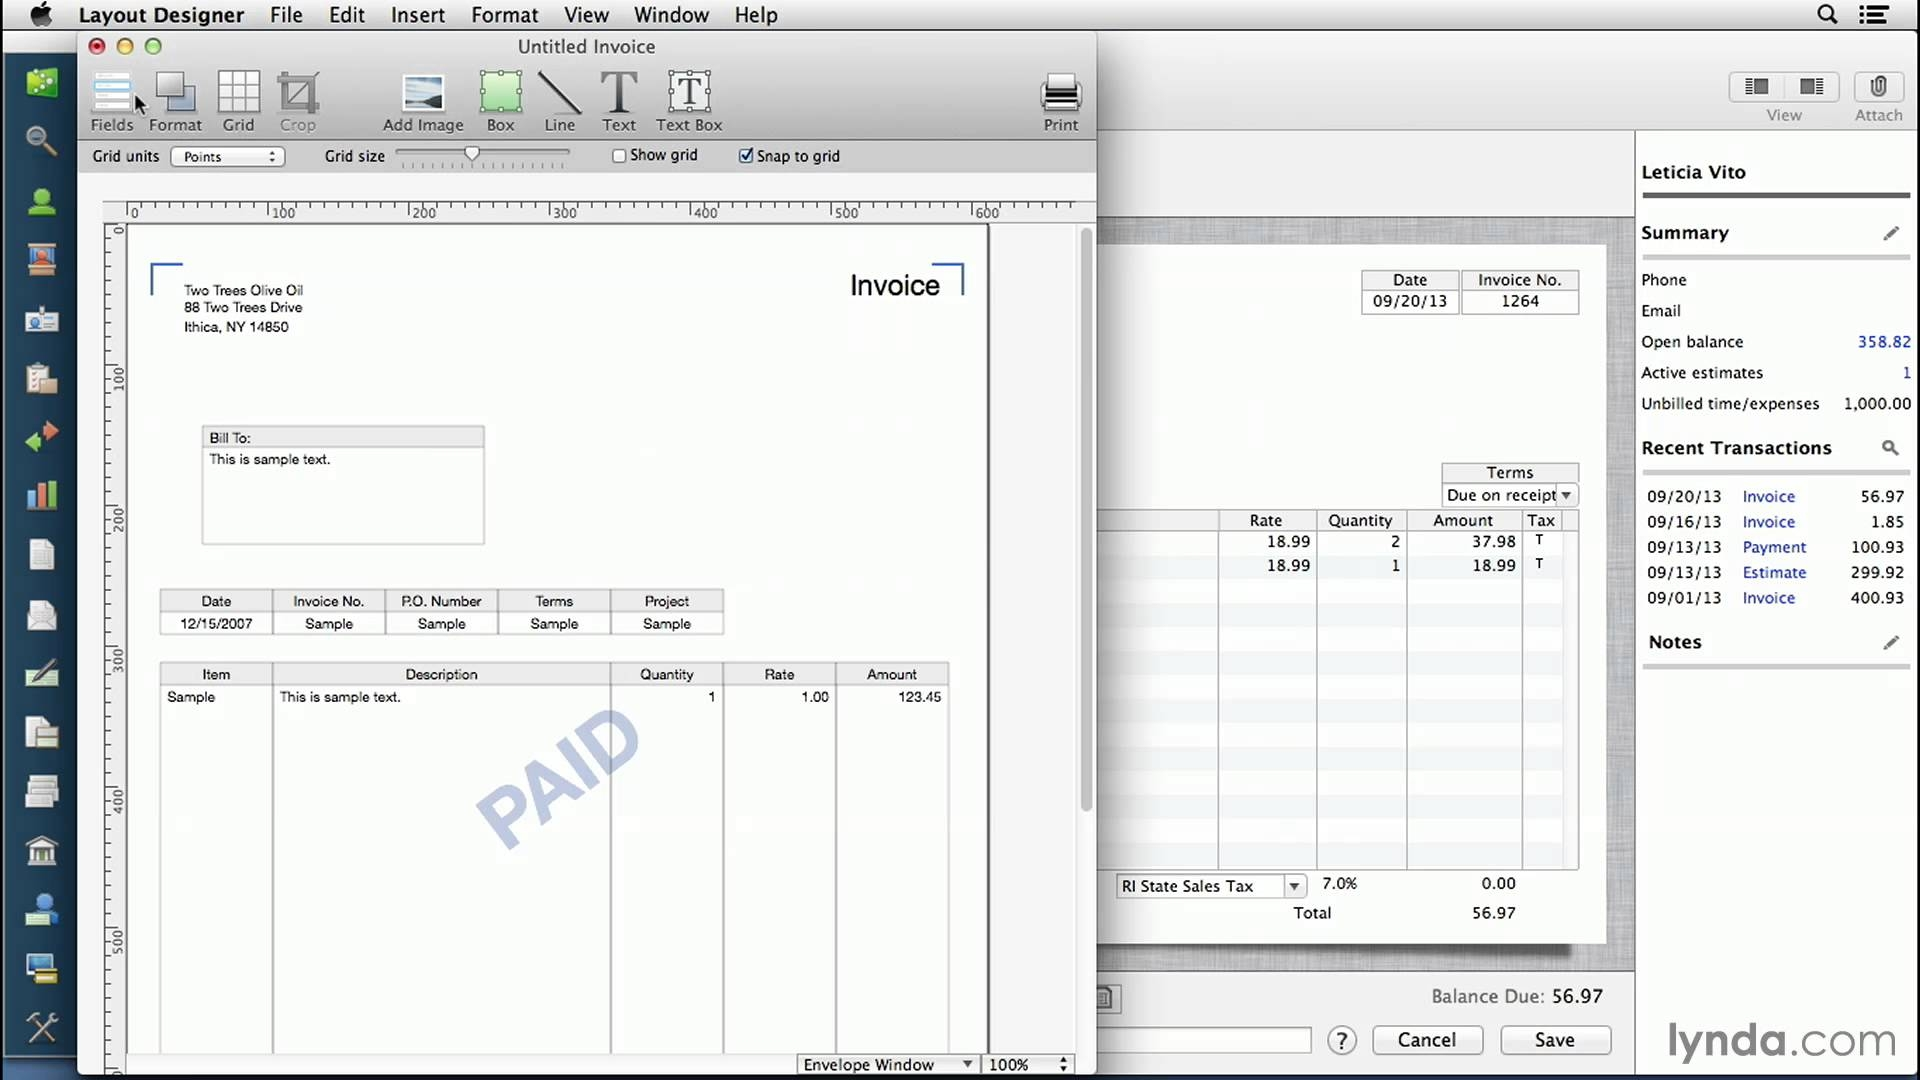 quickbooks for mac tutorial customizing invoices and forms quickbooks invoice forms